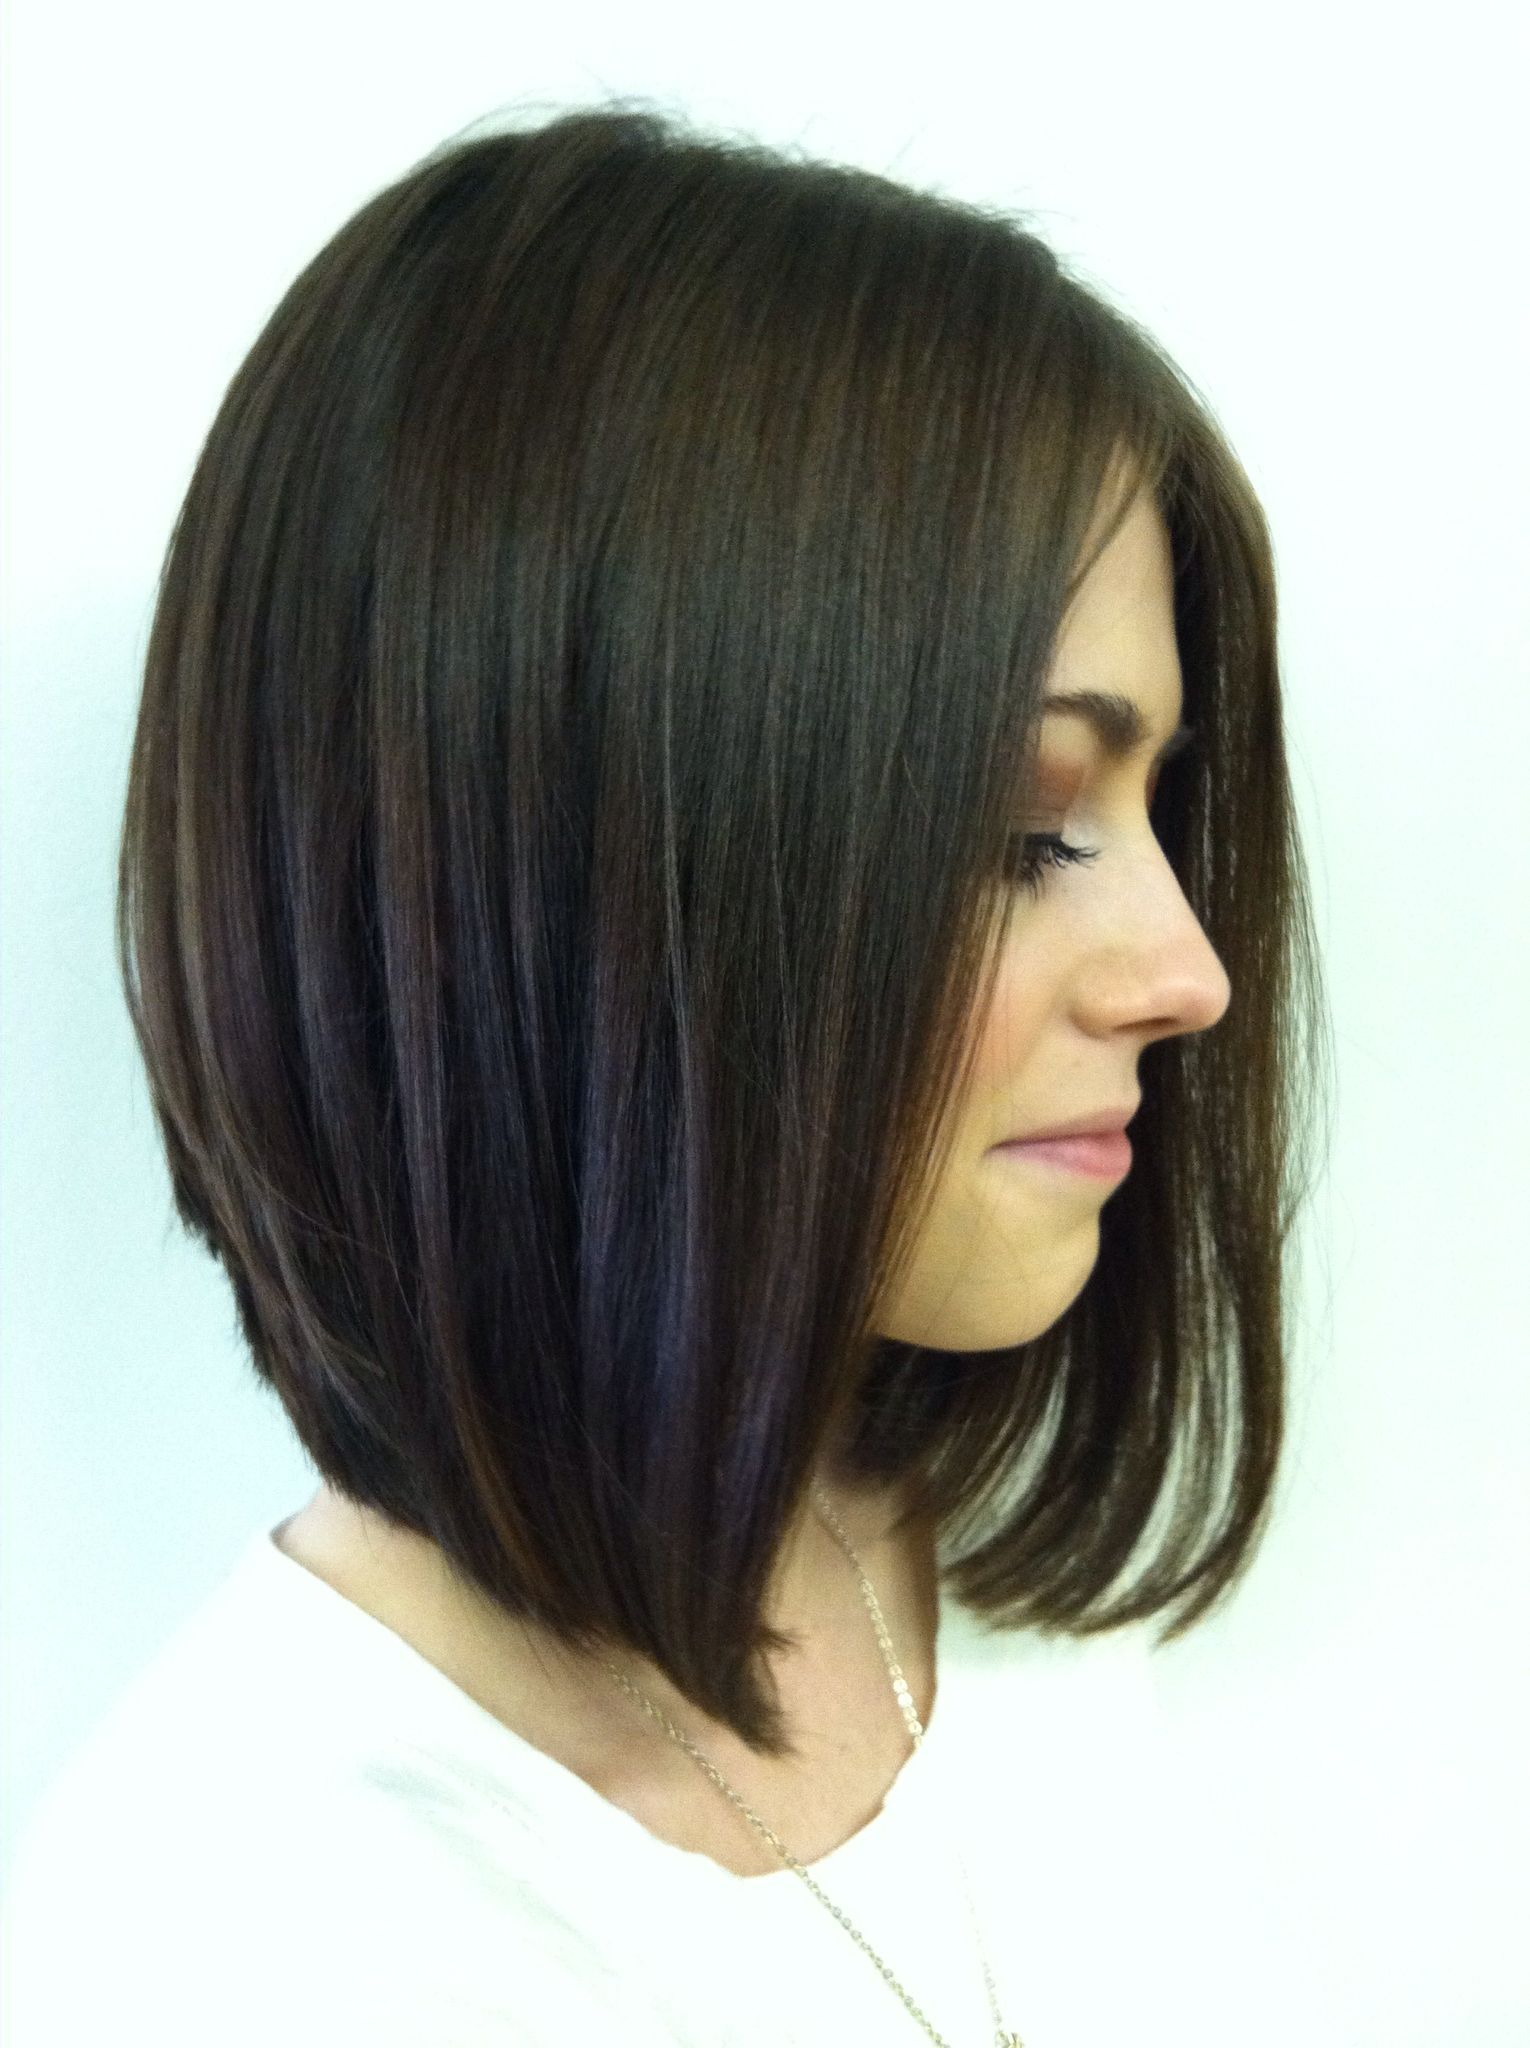 Long Angled Stacked Bob Love My Haircut Thin Hair Haircuts Hair Styles Medium Hair Styles